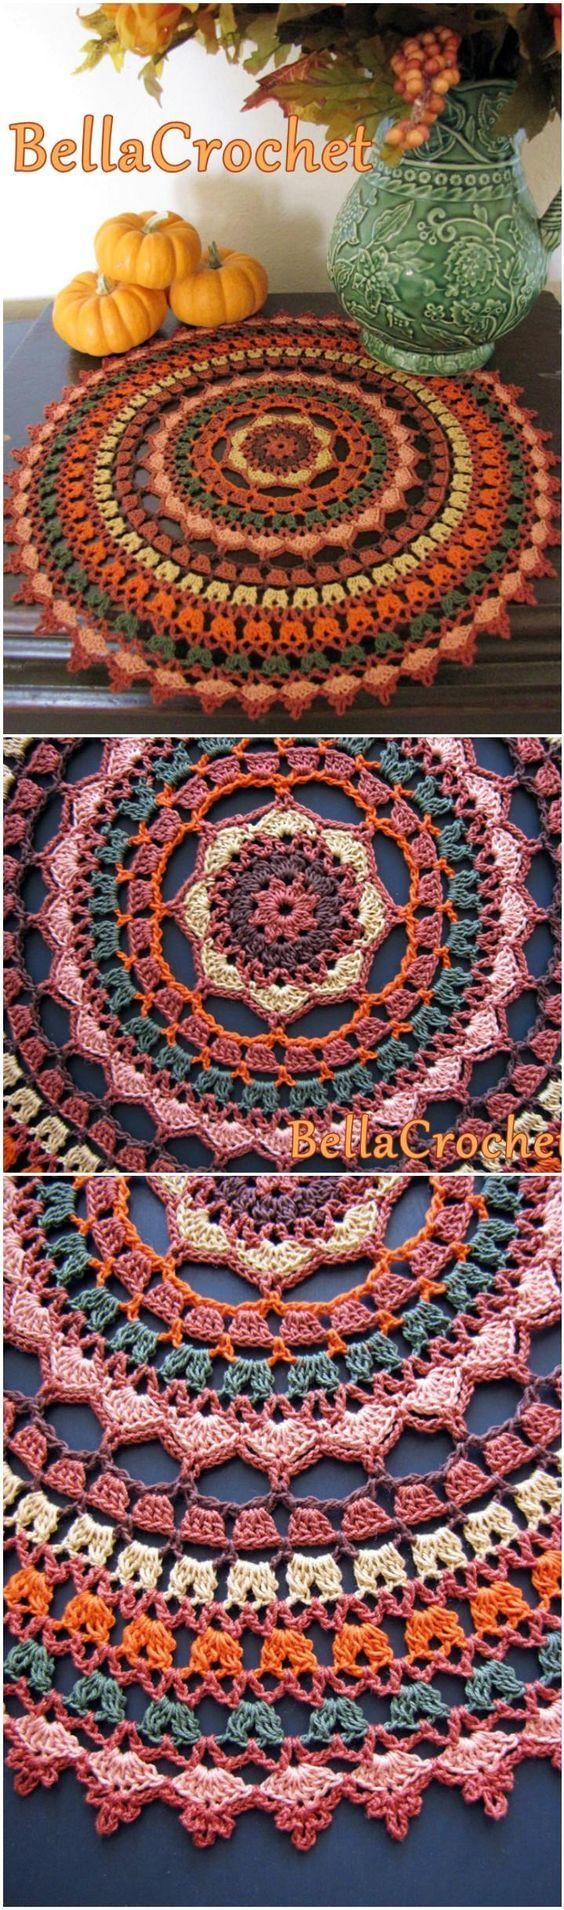 Crochet Autumn Spice Mandala Doily - 60+ Free Crochet Mandala Patterns - Page 3 of 12 - DIY & Crafts